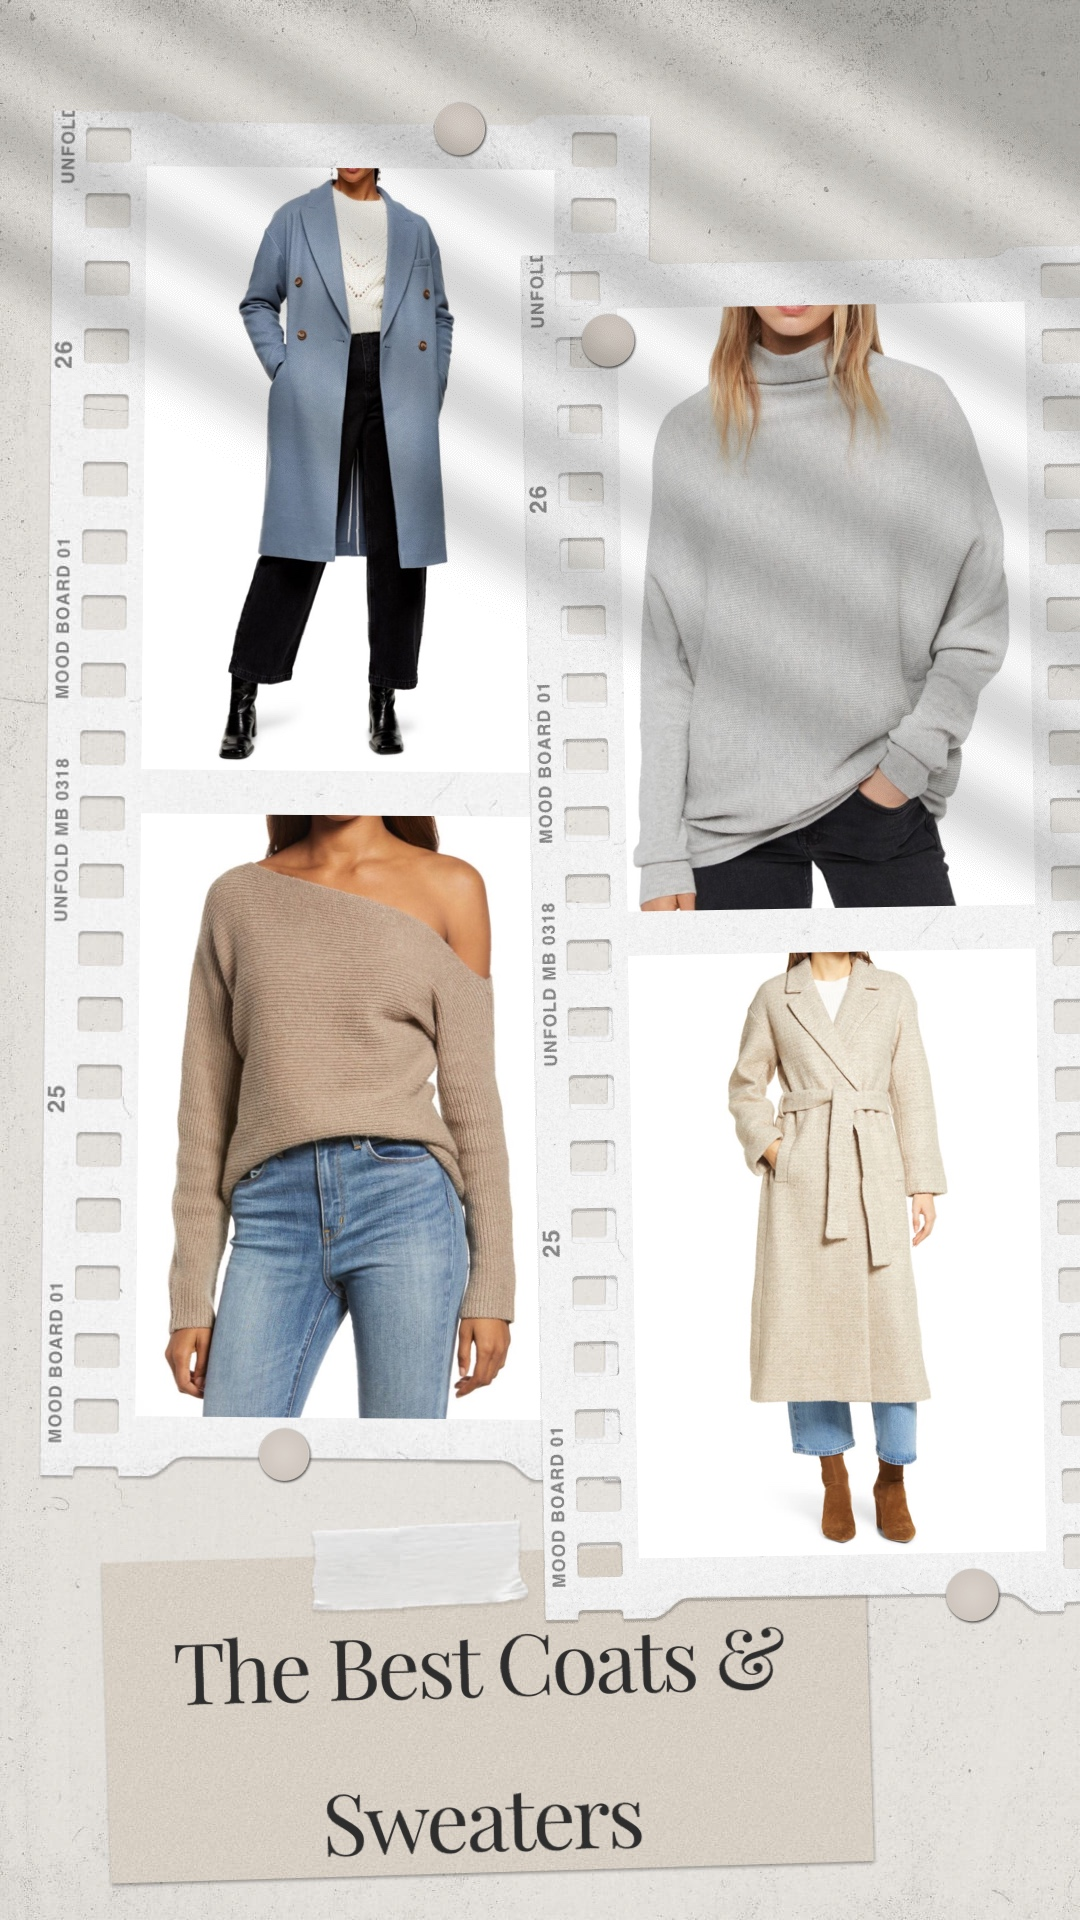 Most Fashionable Coats & Sweaters That Will Elevate Your Style This Season